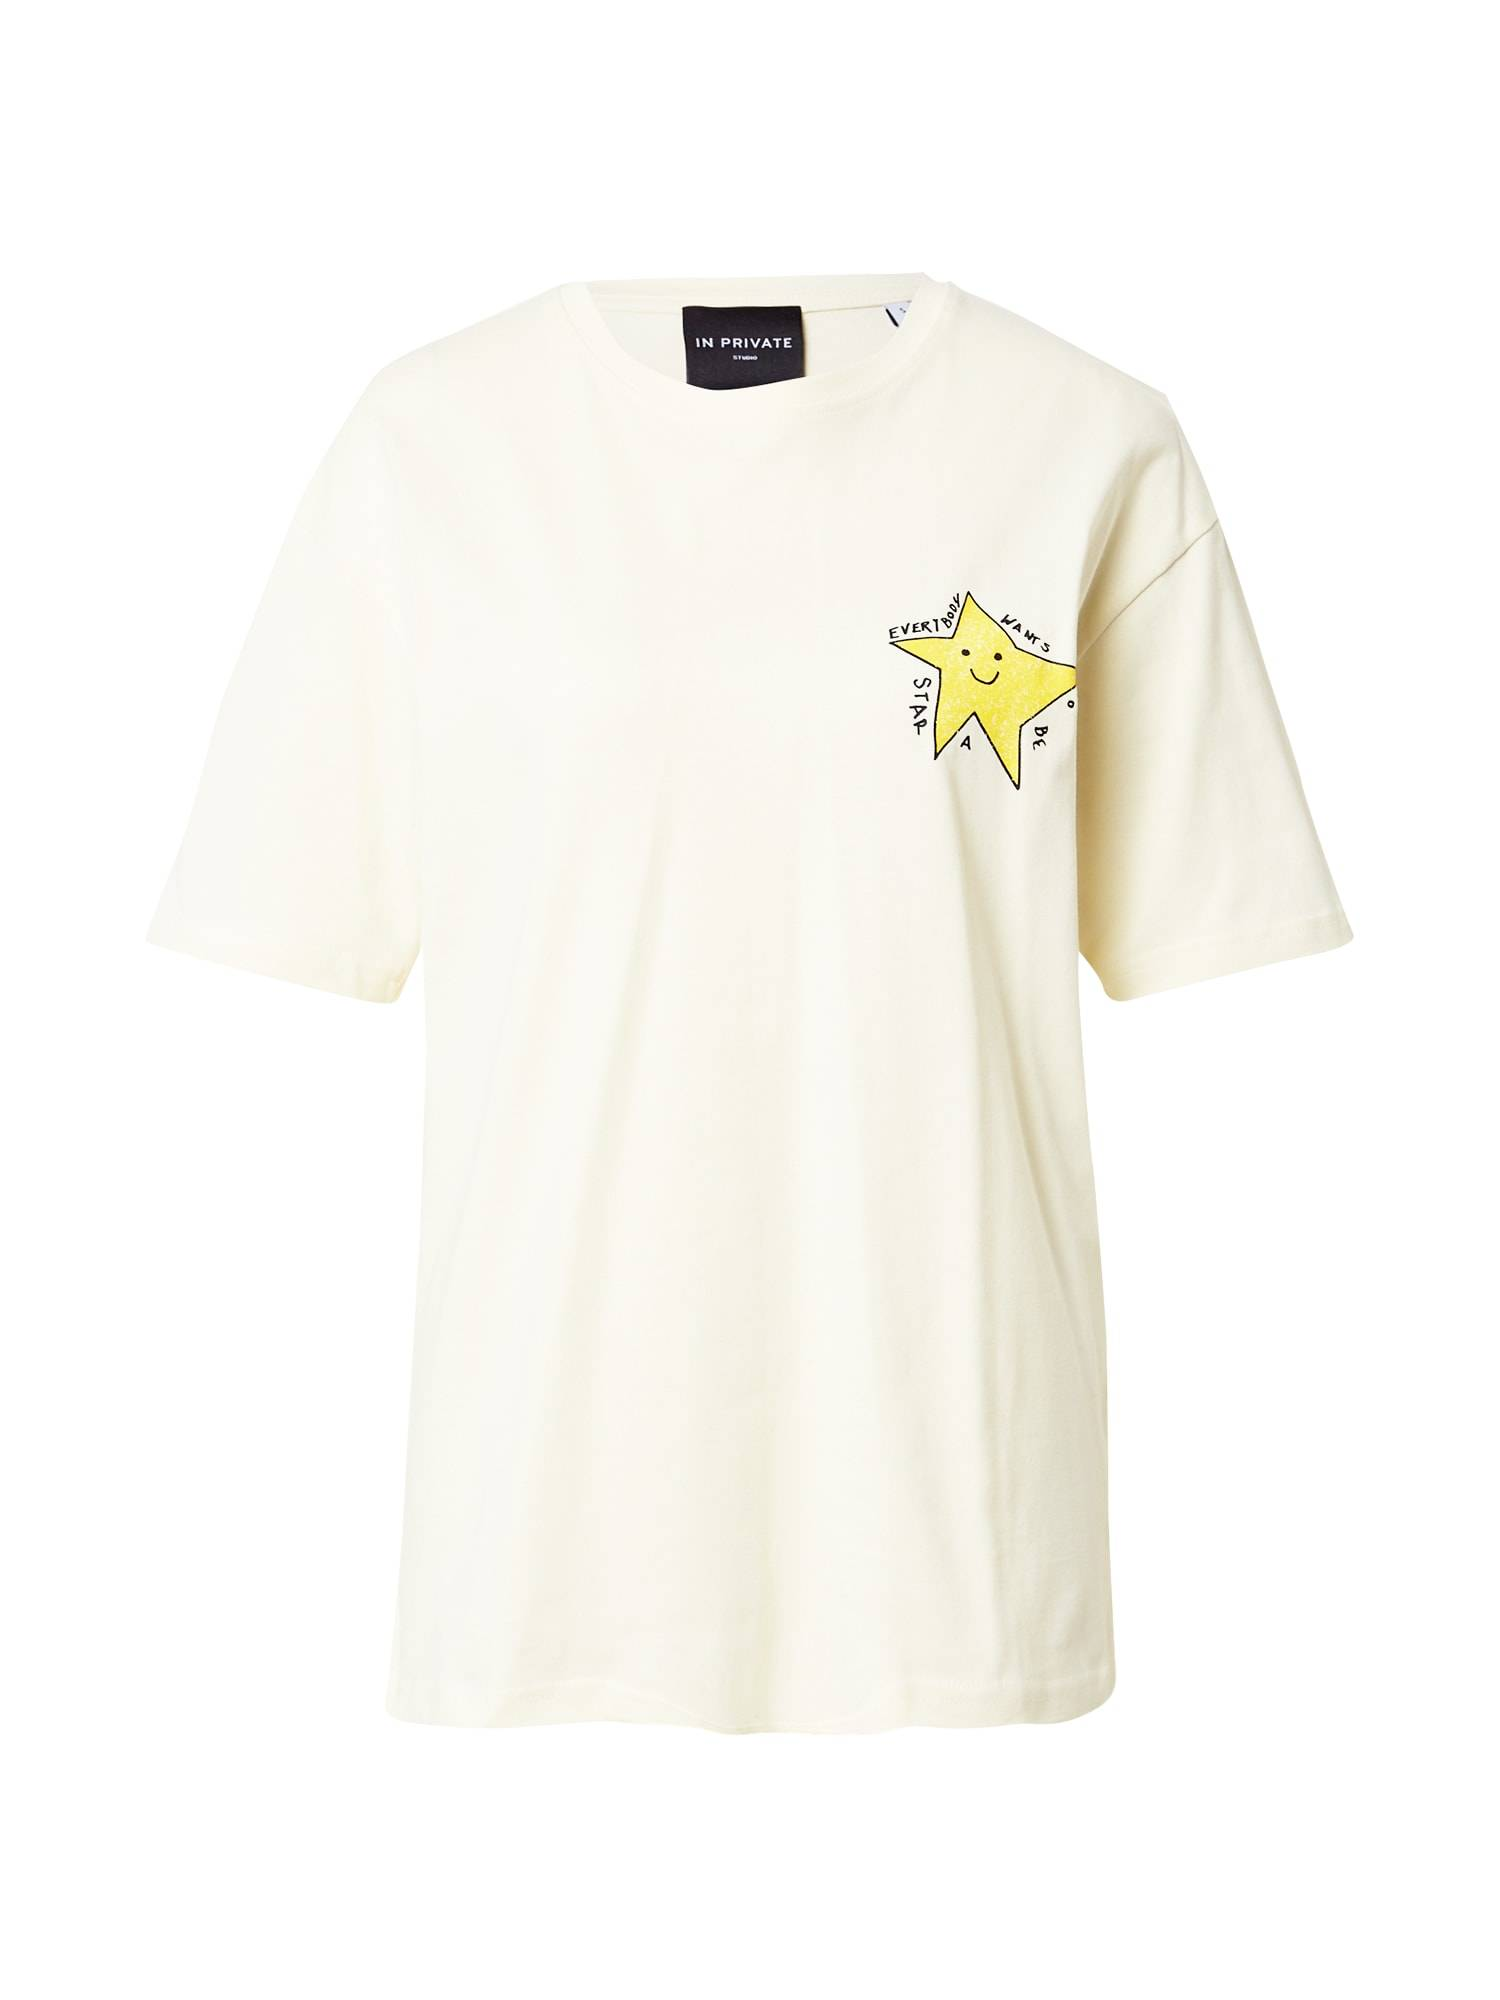 IN PRIVATE Studio T-shirt 'LONELY STAR'  - Blanc - Taille: L - female